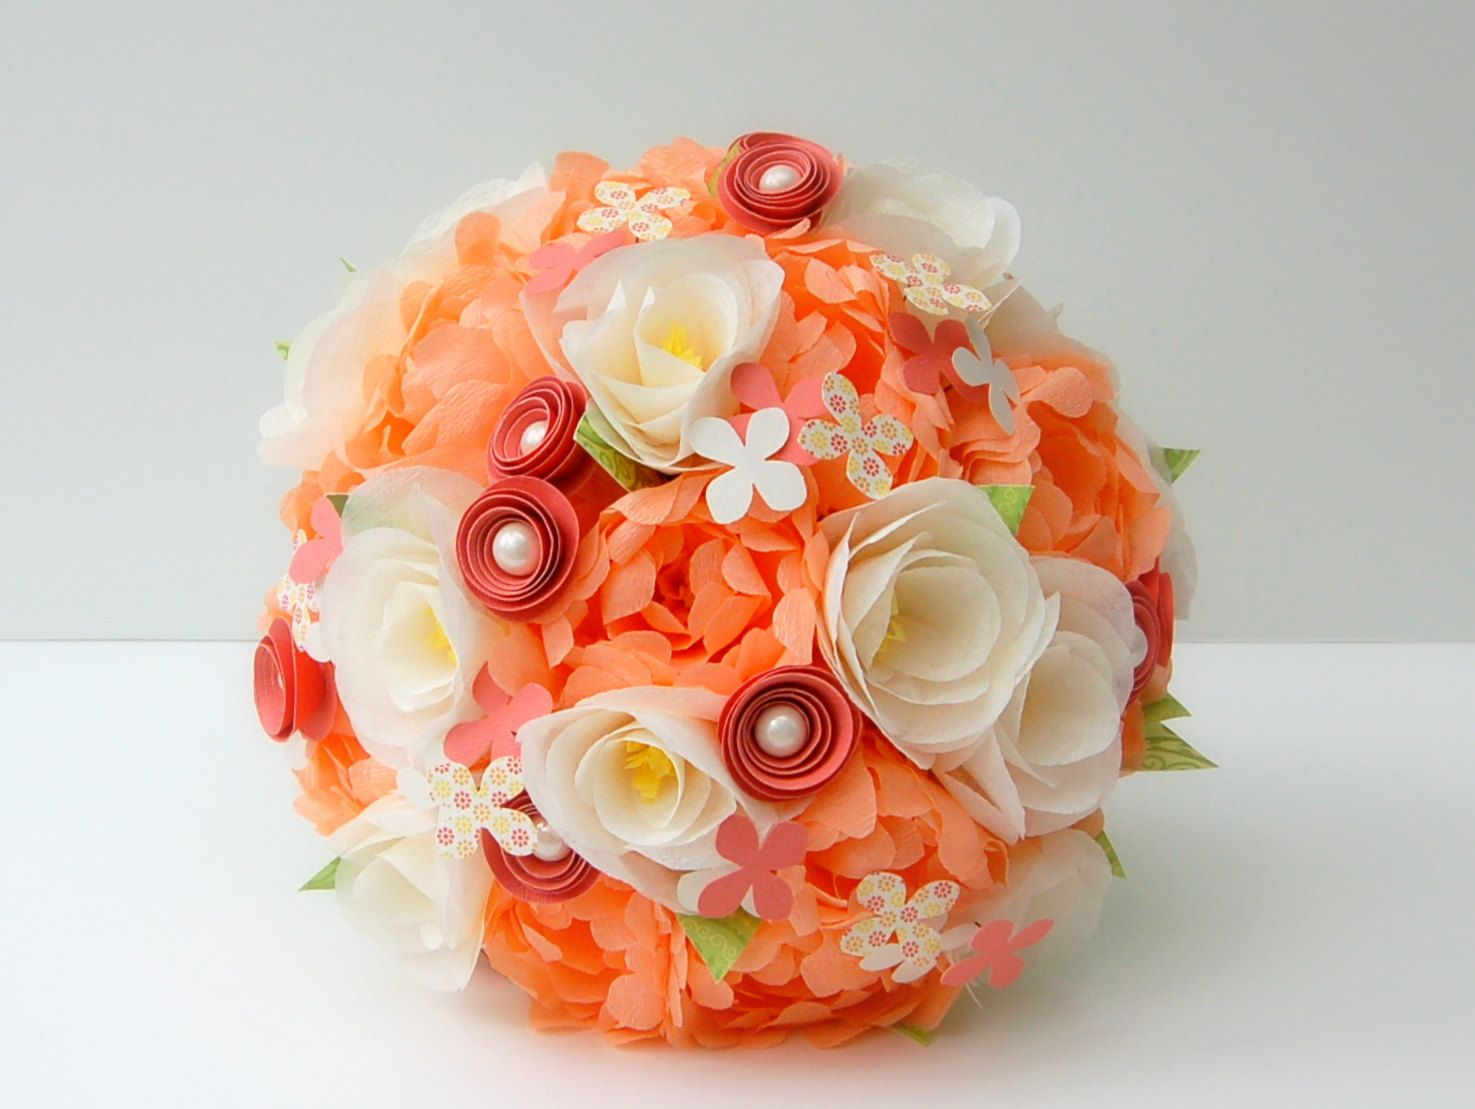 Paper flower bouquet peach and ivory handmade paper flowers paper wedding flower bouquet peach and ivory handmade paper flowers bridal bouqueti like the colors but with real flowers izmirmasajfo Choice Image